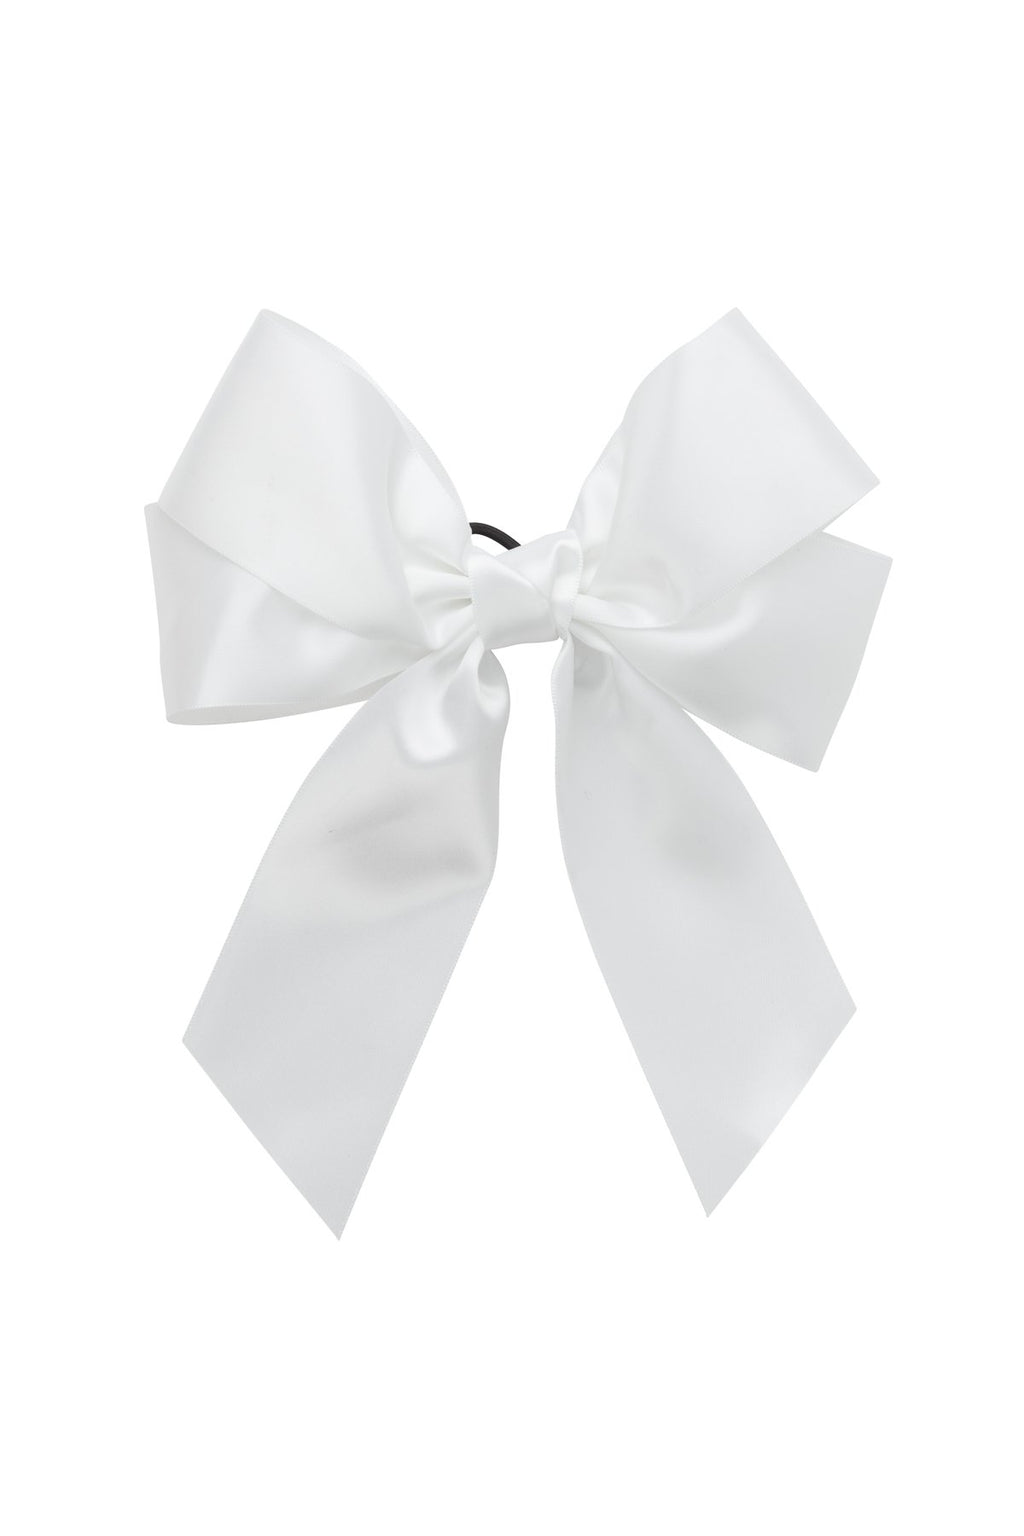 Oversized Bow Pony/Clip - White - PROJECT 6, modest fashion